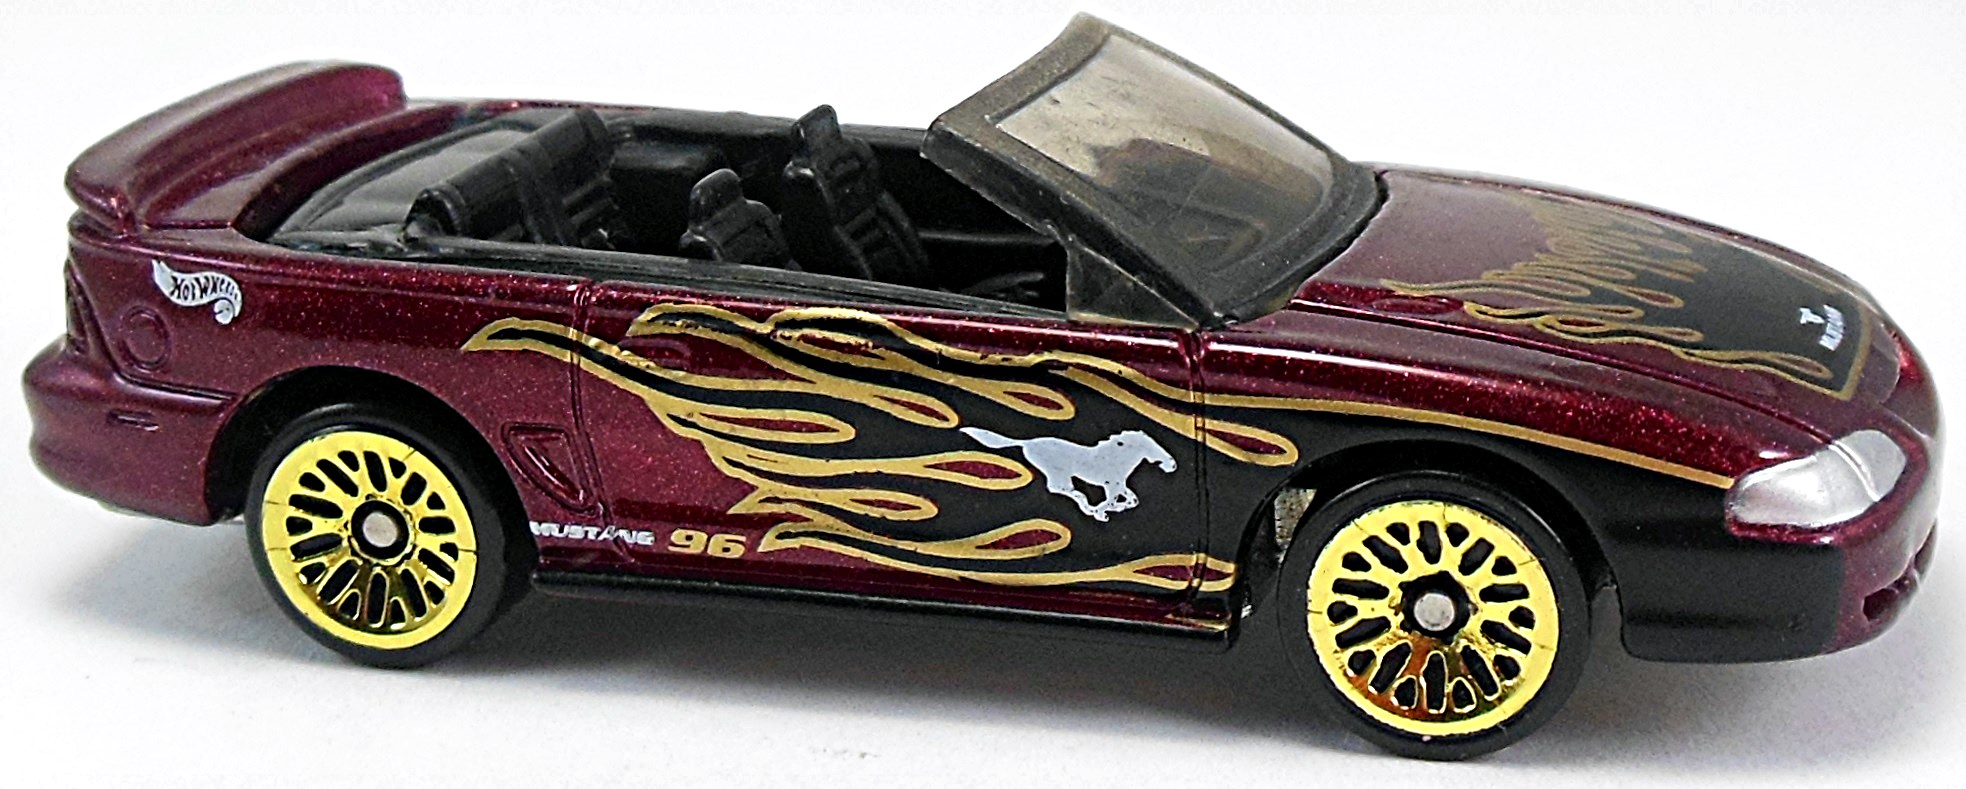 All Types 1996 mustang : 1996 Mustang GT – 67mm – 1996 to 2003 | Hot Wheels Newsletter